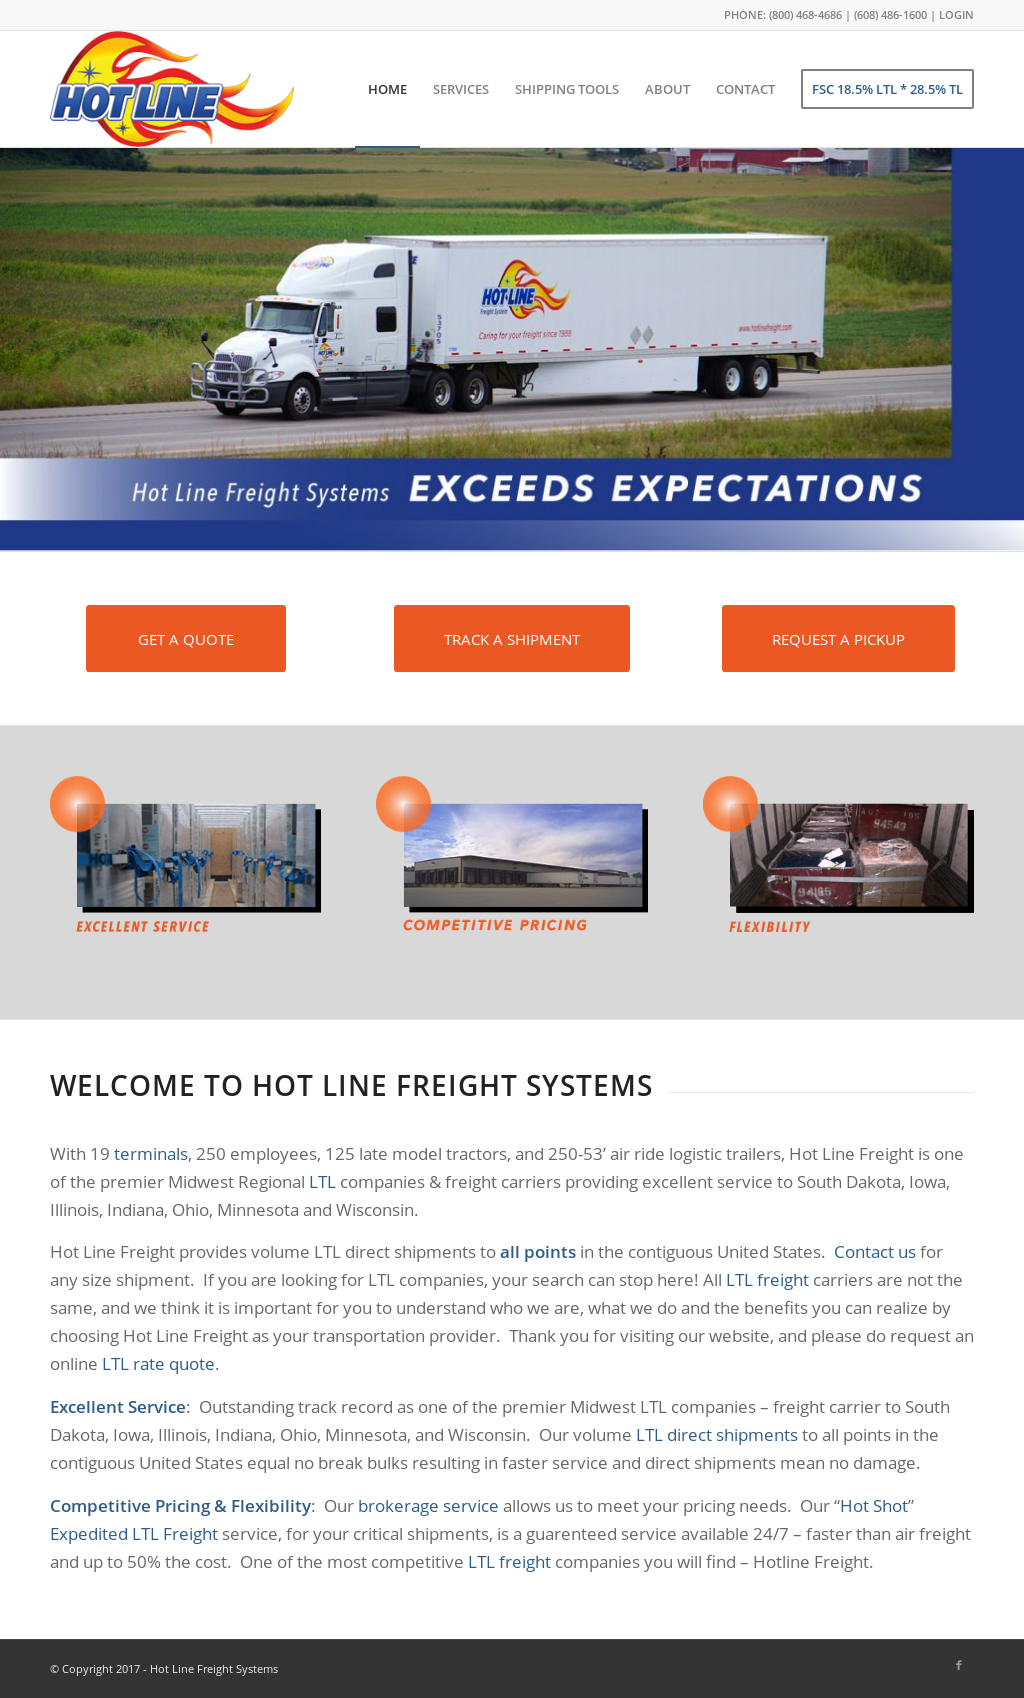 Hot-Line Freight Systems Competitors, Revenue and Employees - Owler Company Profile